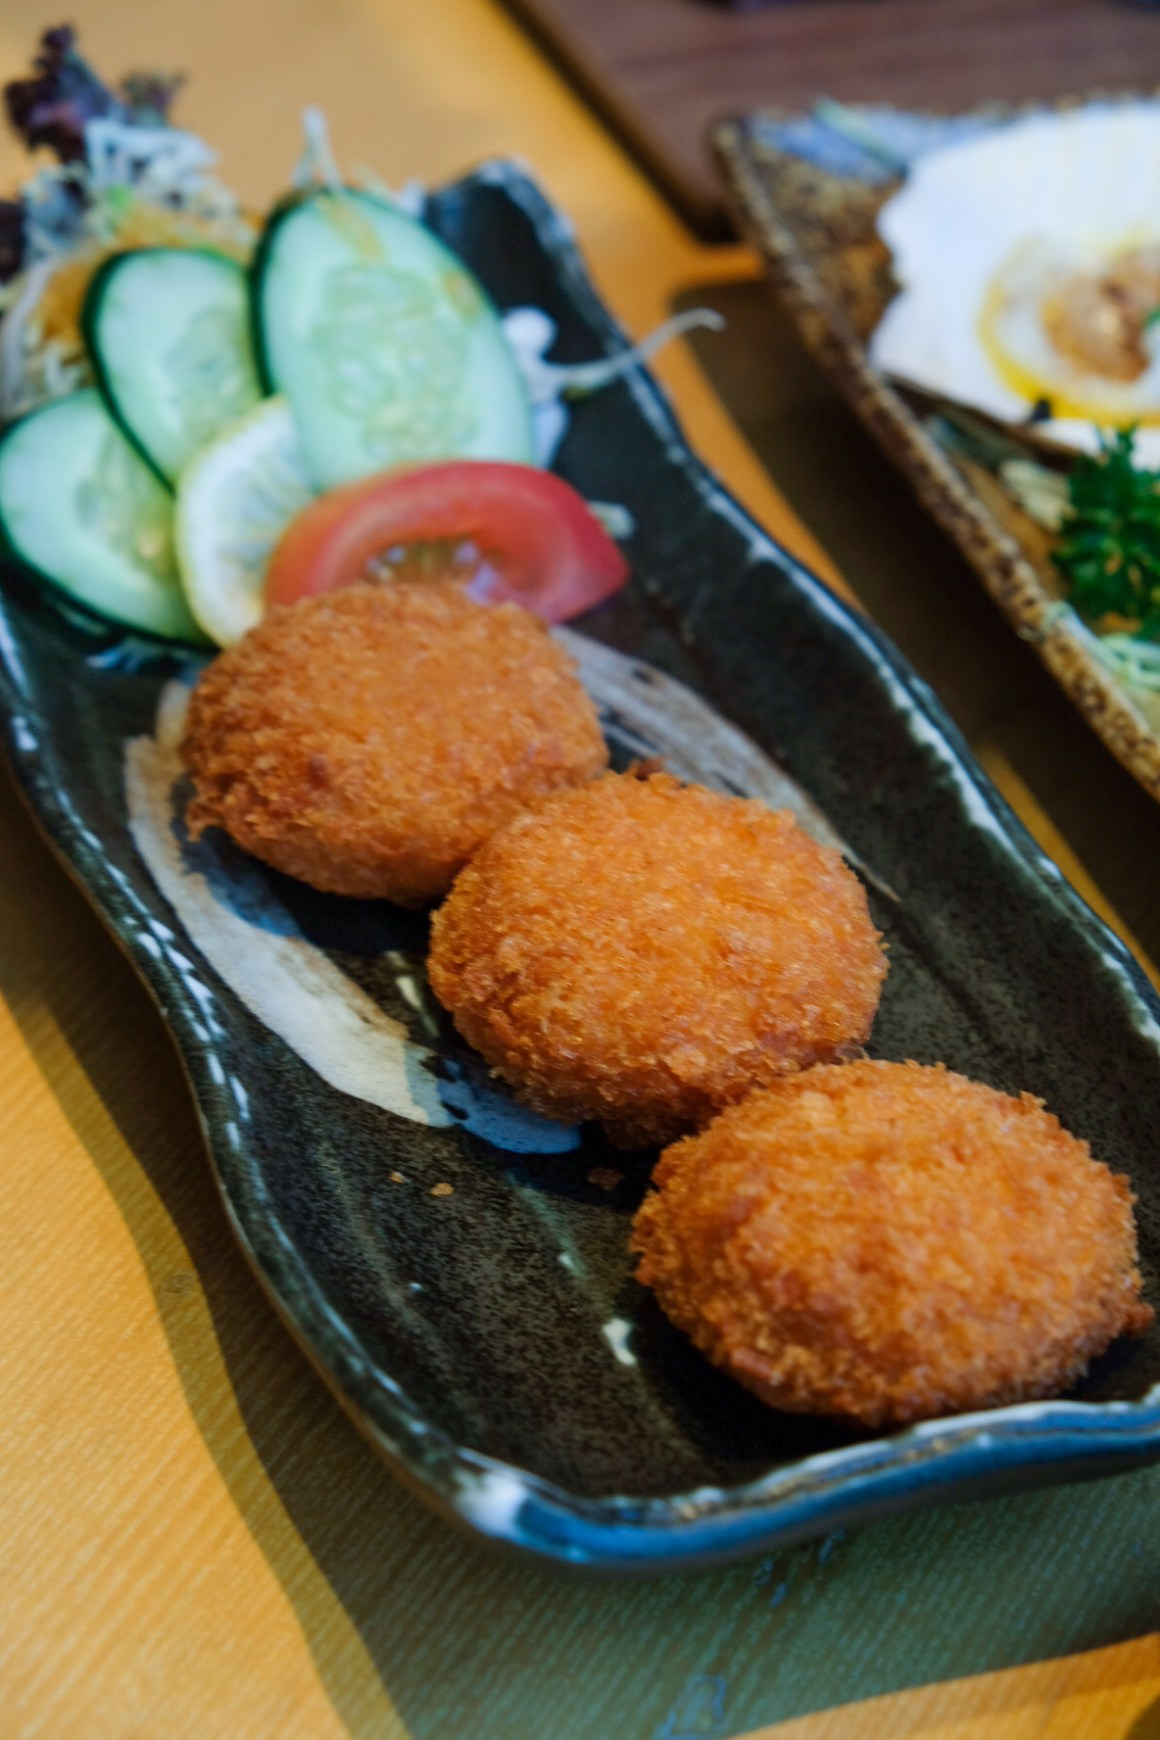 Sushi Tei's New Autumn Menu - Yoshoku Lobster Croquette ($6.90)